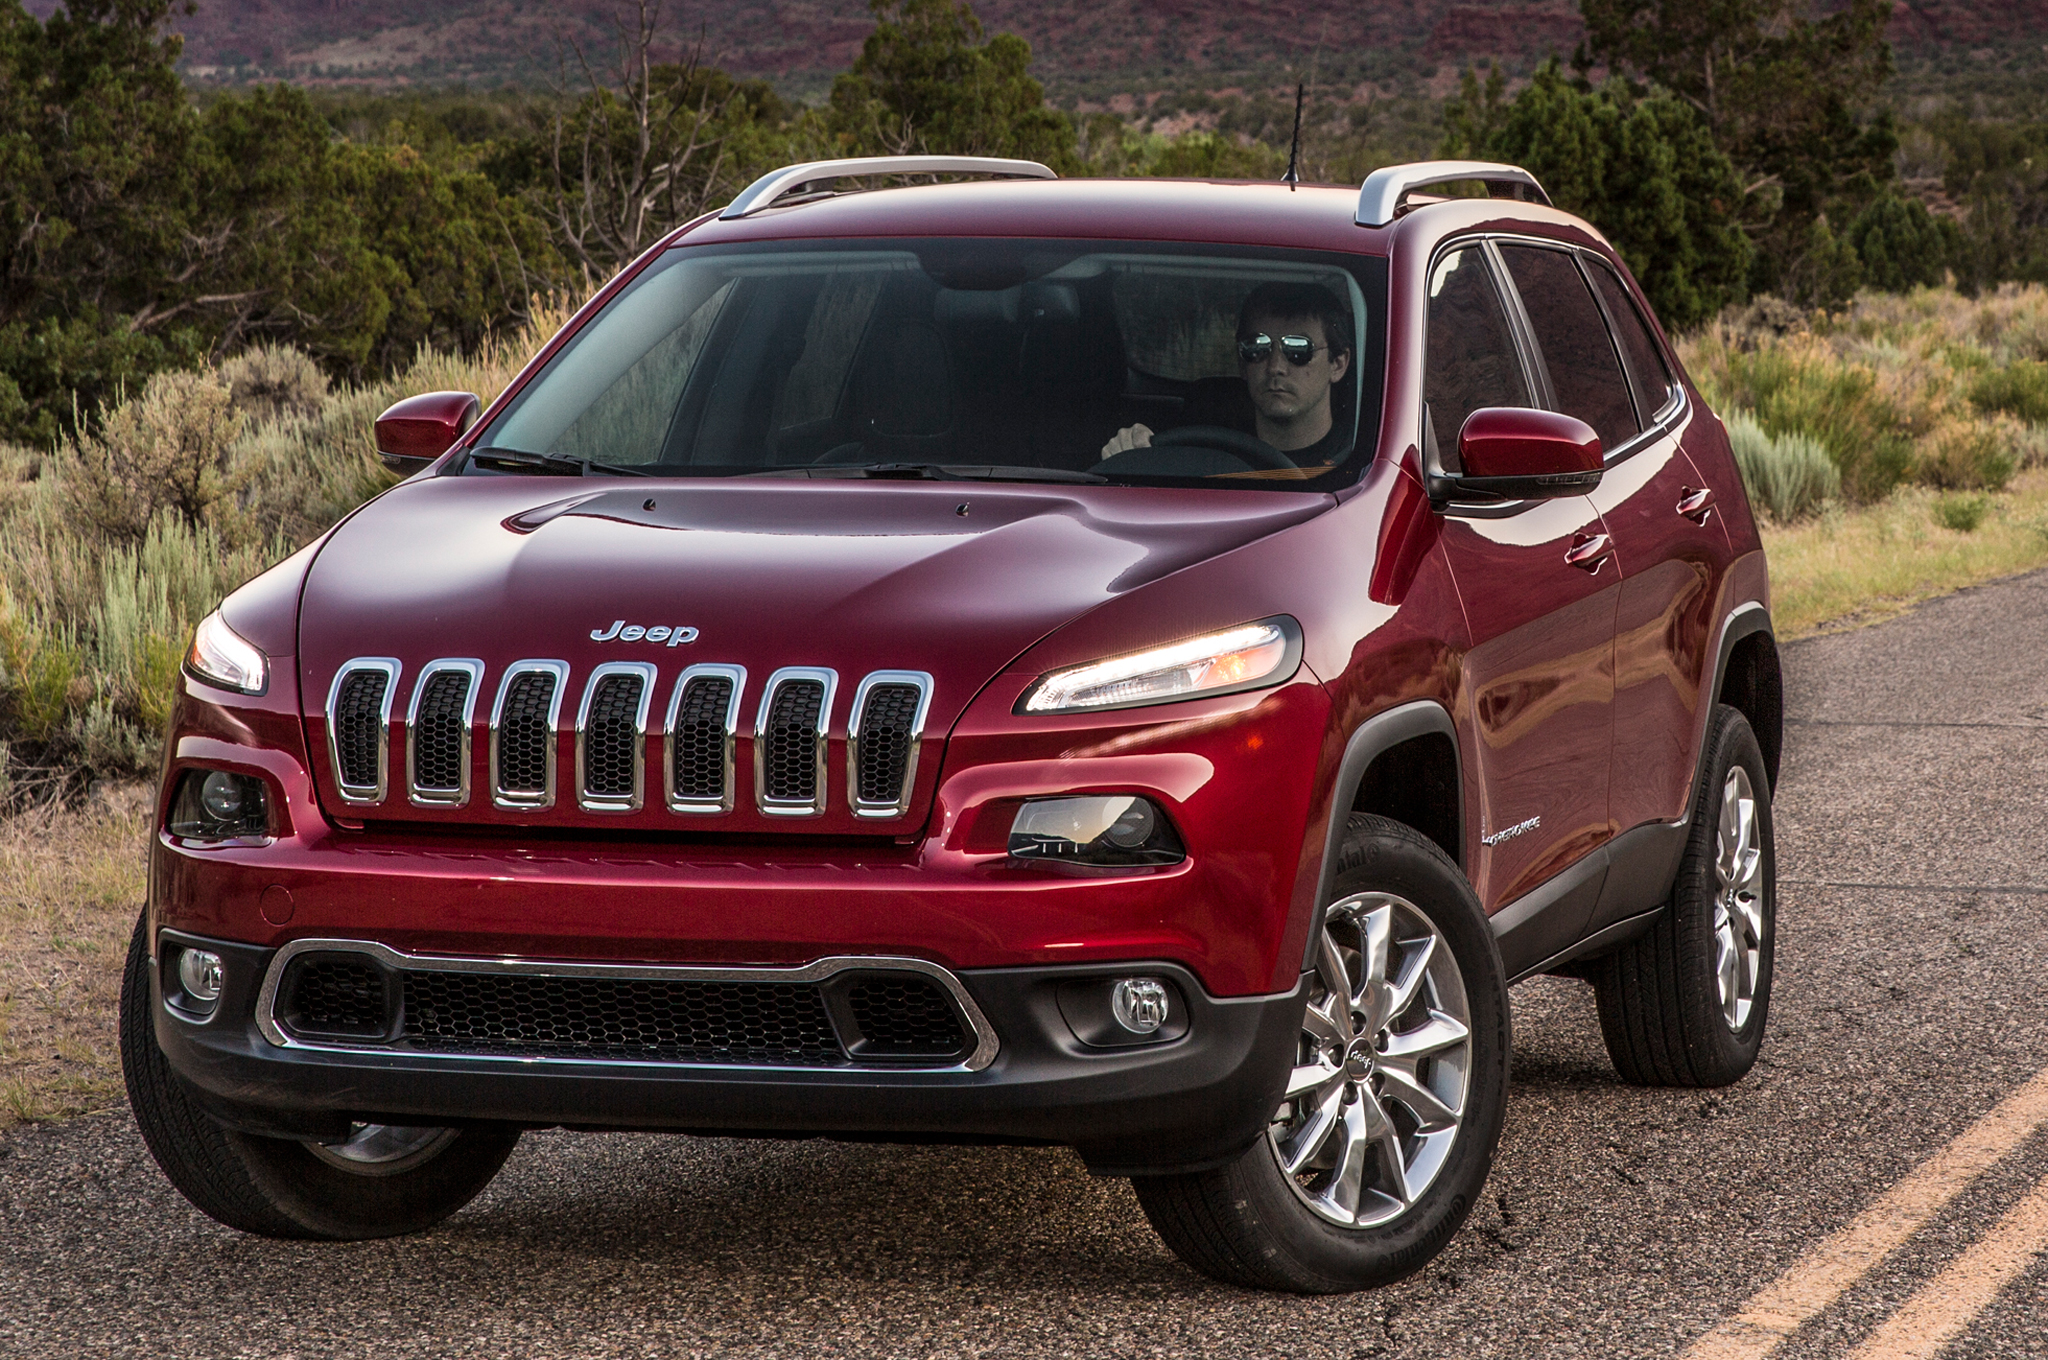 chrysler recalls jeep cherokee and chrysler 200 daily recall. Black Bedroom Furniture Sets. Home Design Ideas